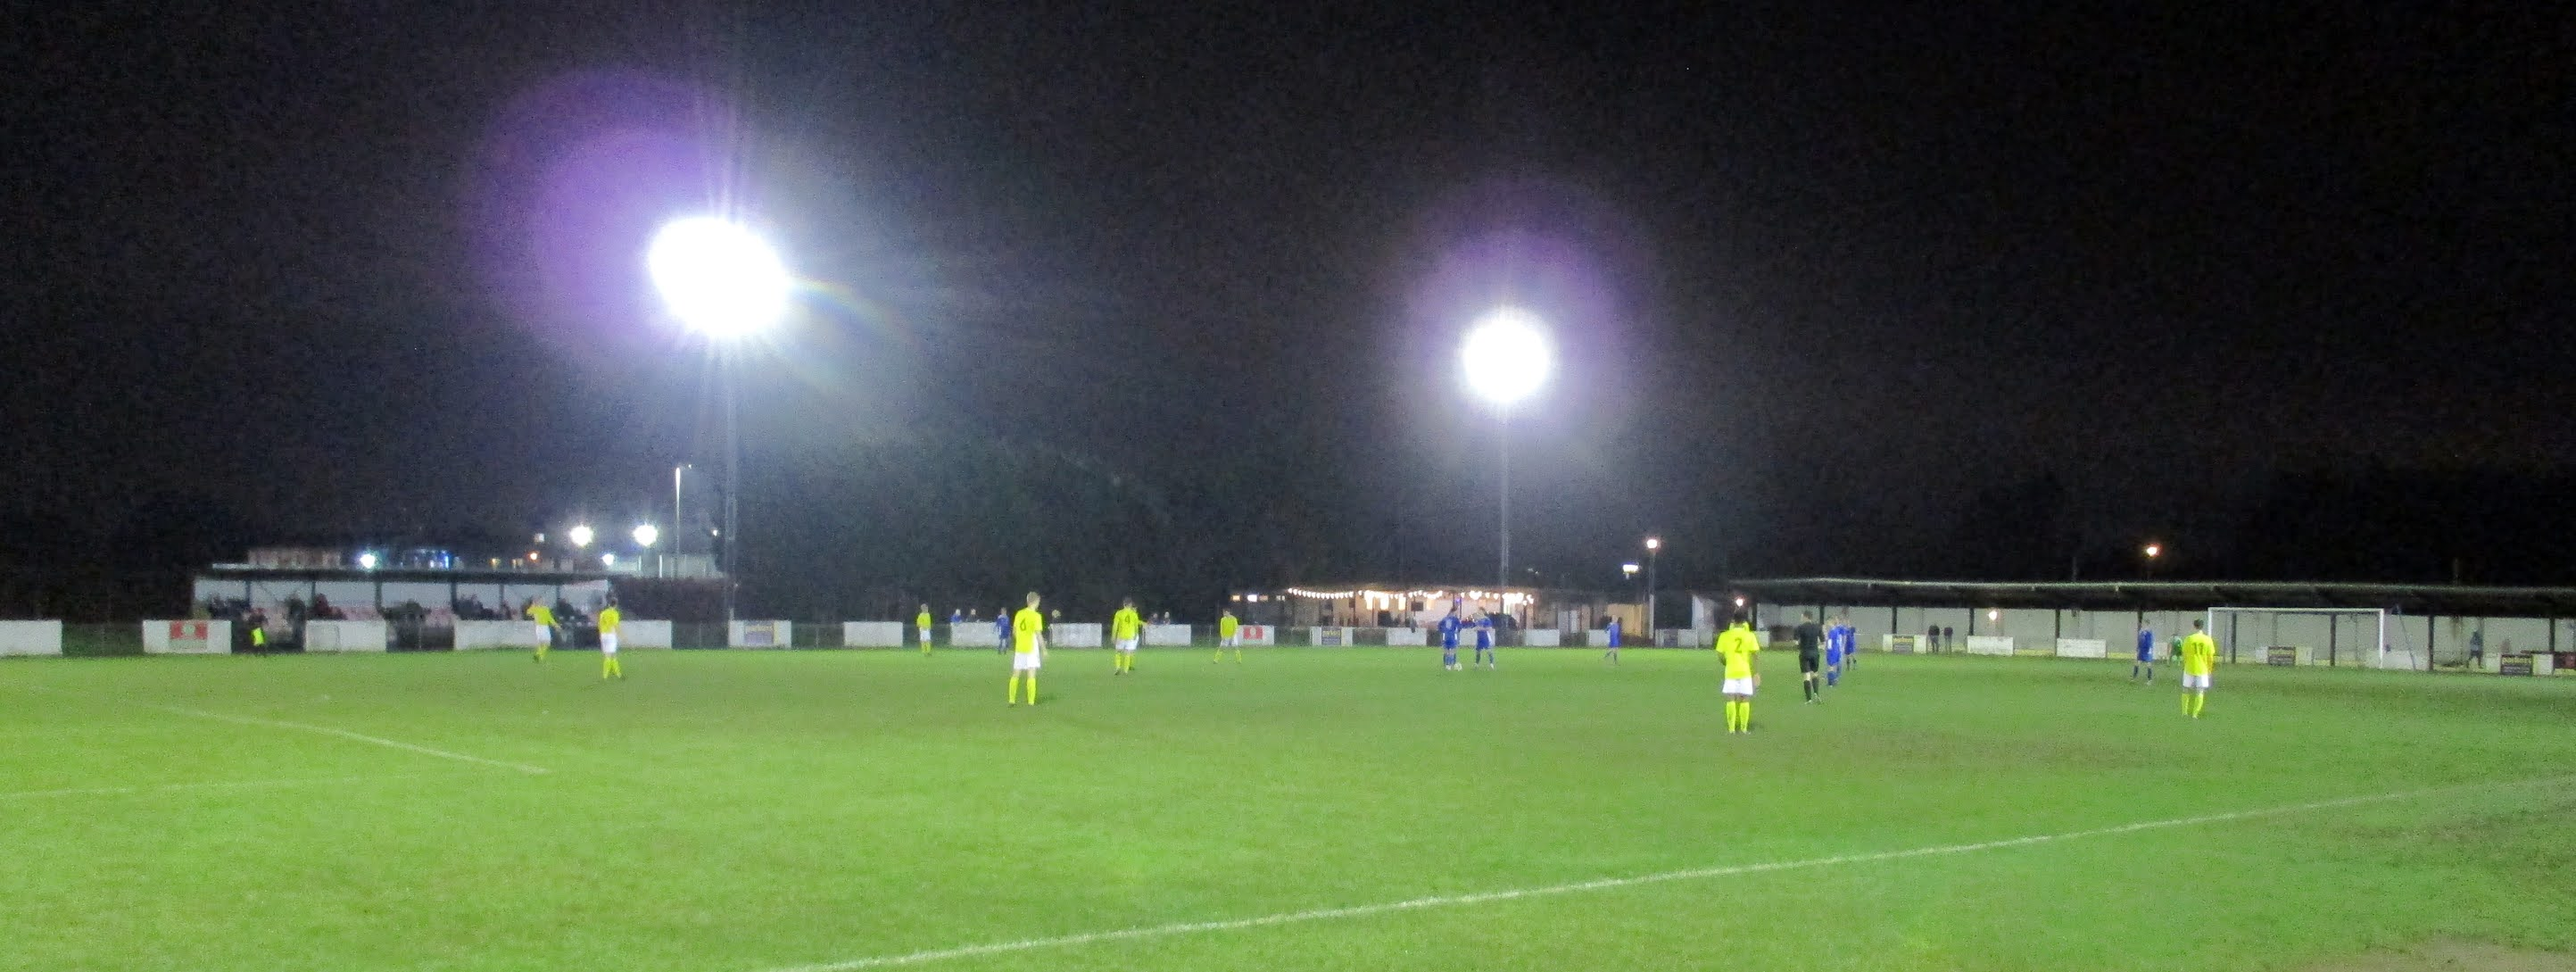 Reading City vs. Brackley Town Saints about to kick off at The Rivermoor Stadium